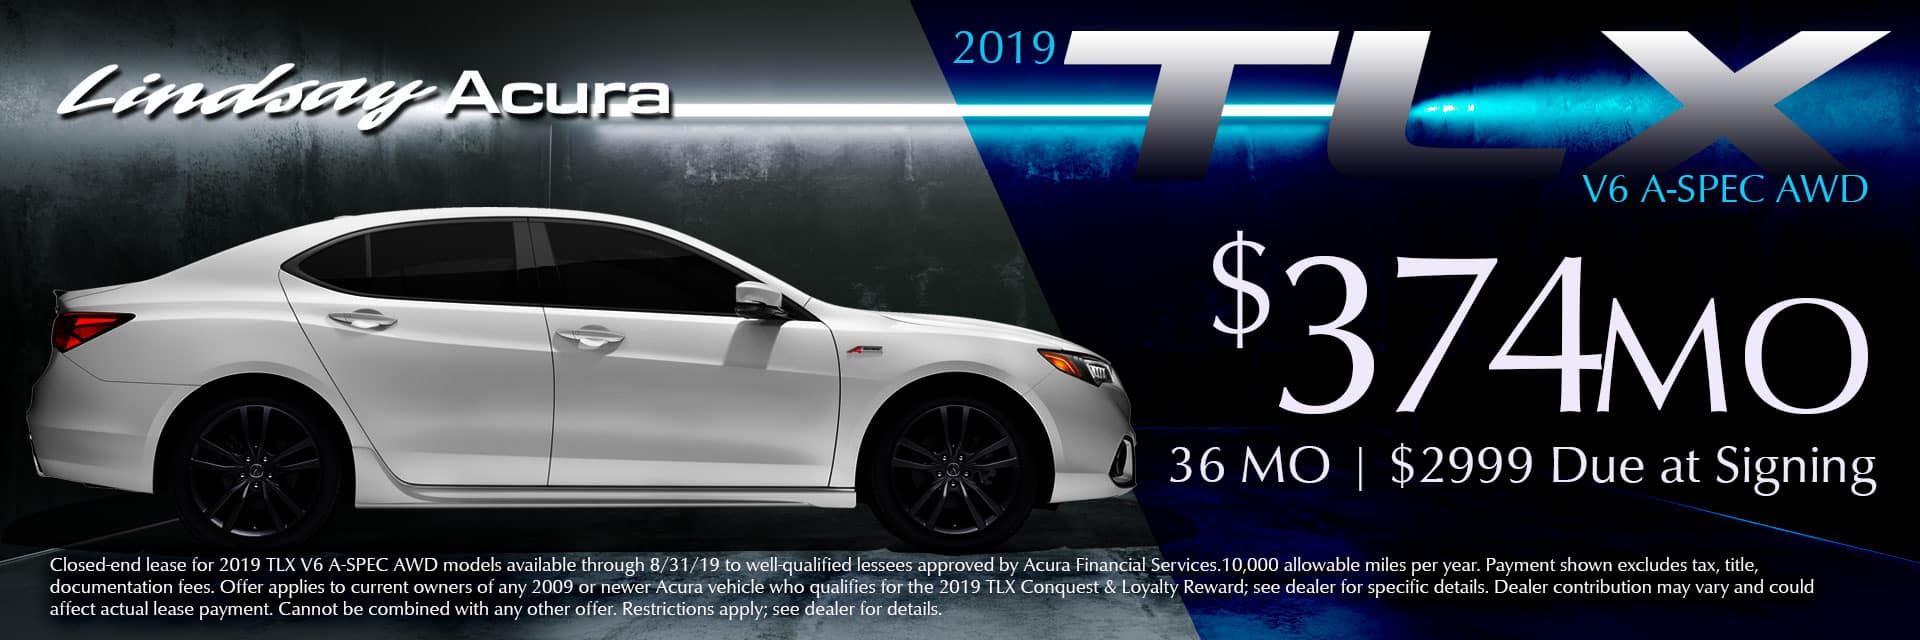 Acura Dealer Parts >> Lindsay Acura Acura Dealer In Columbus Oh